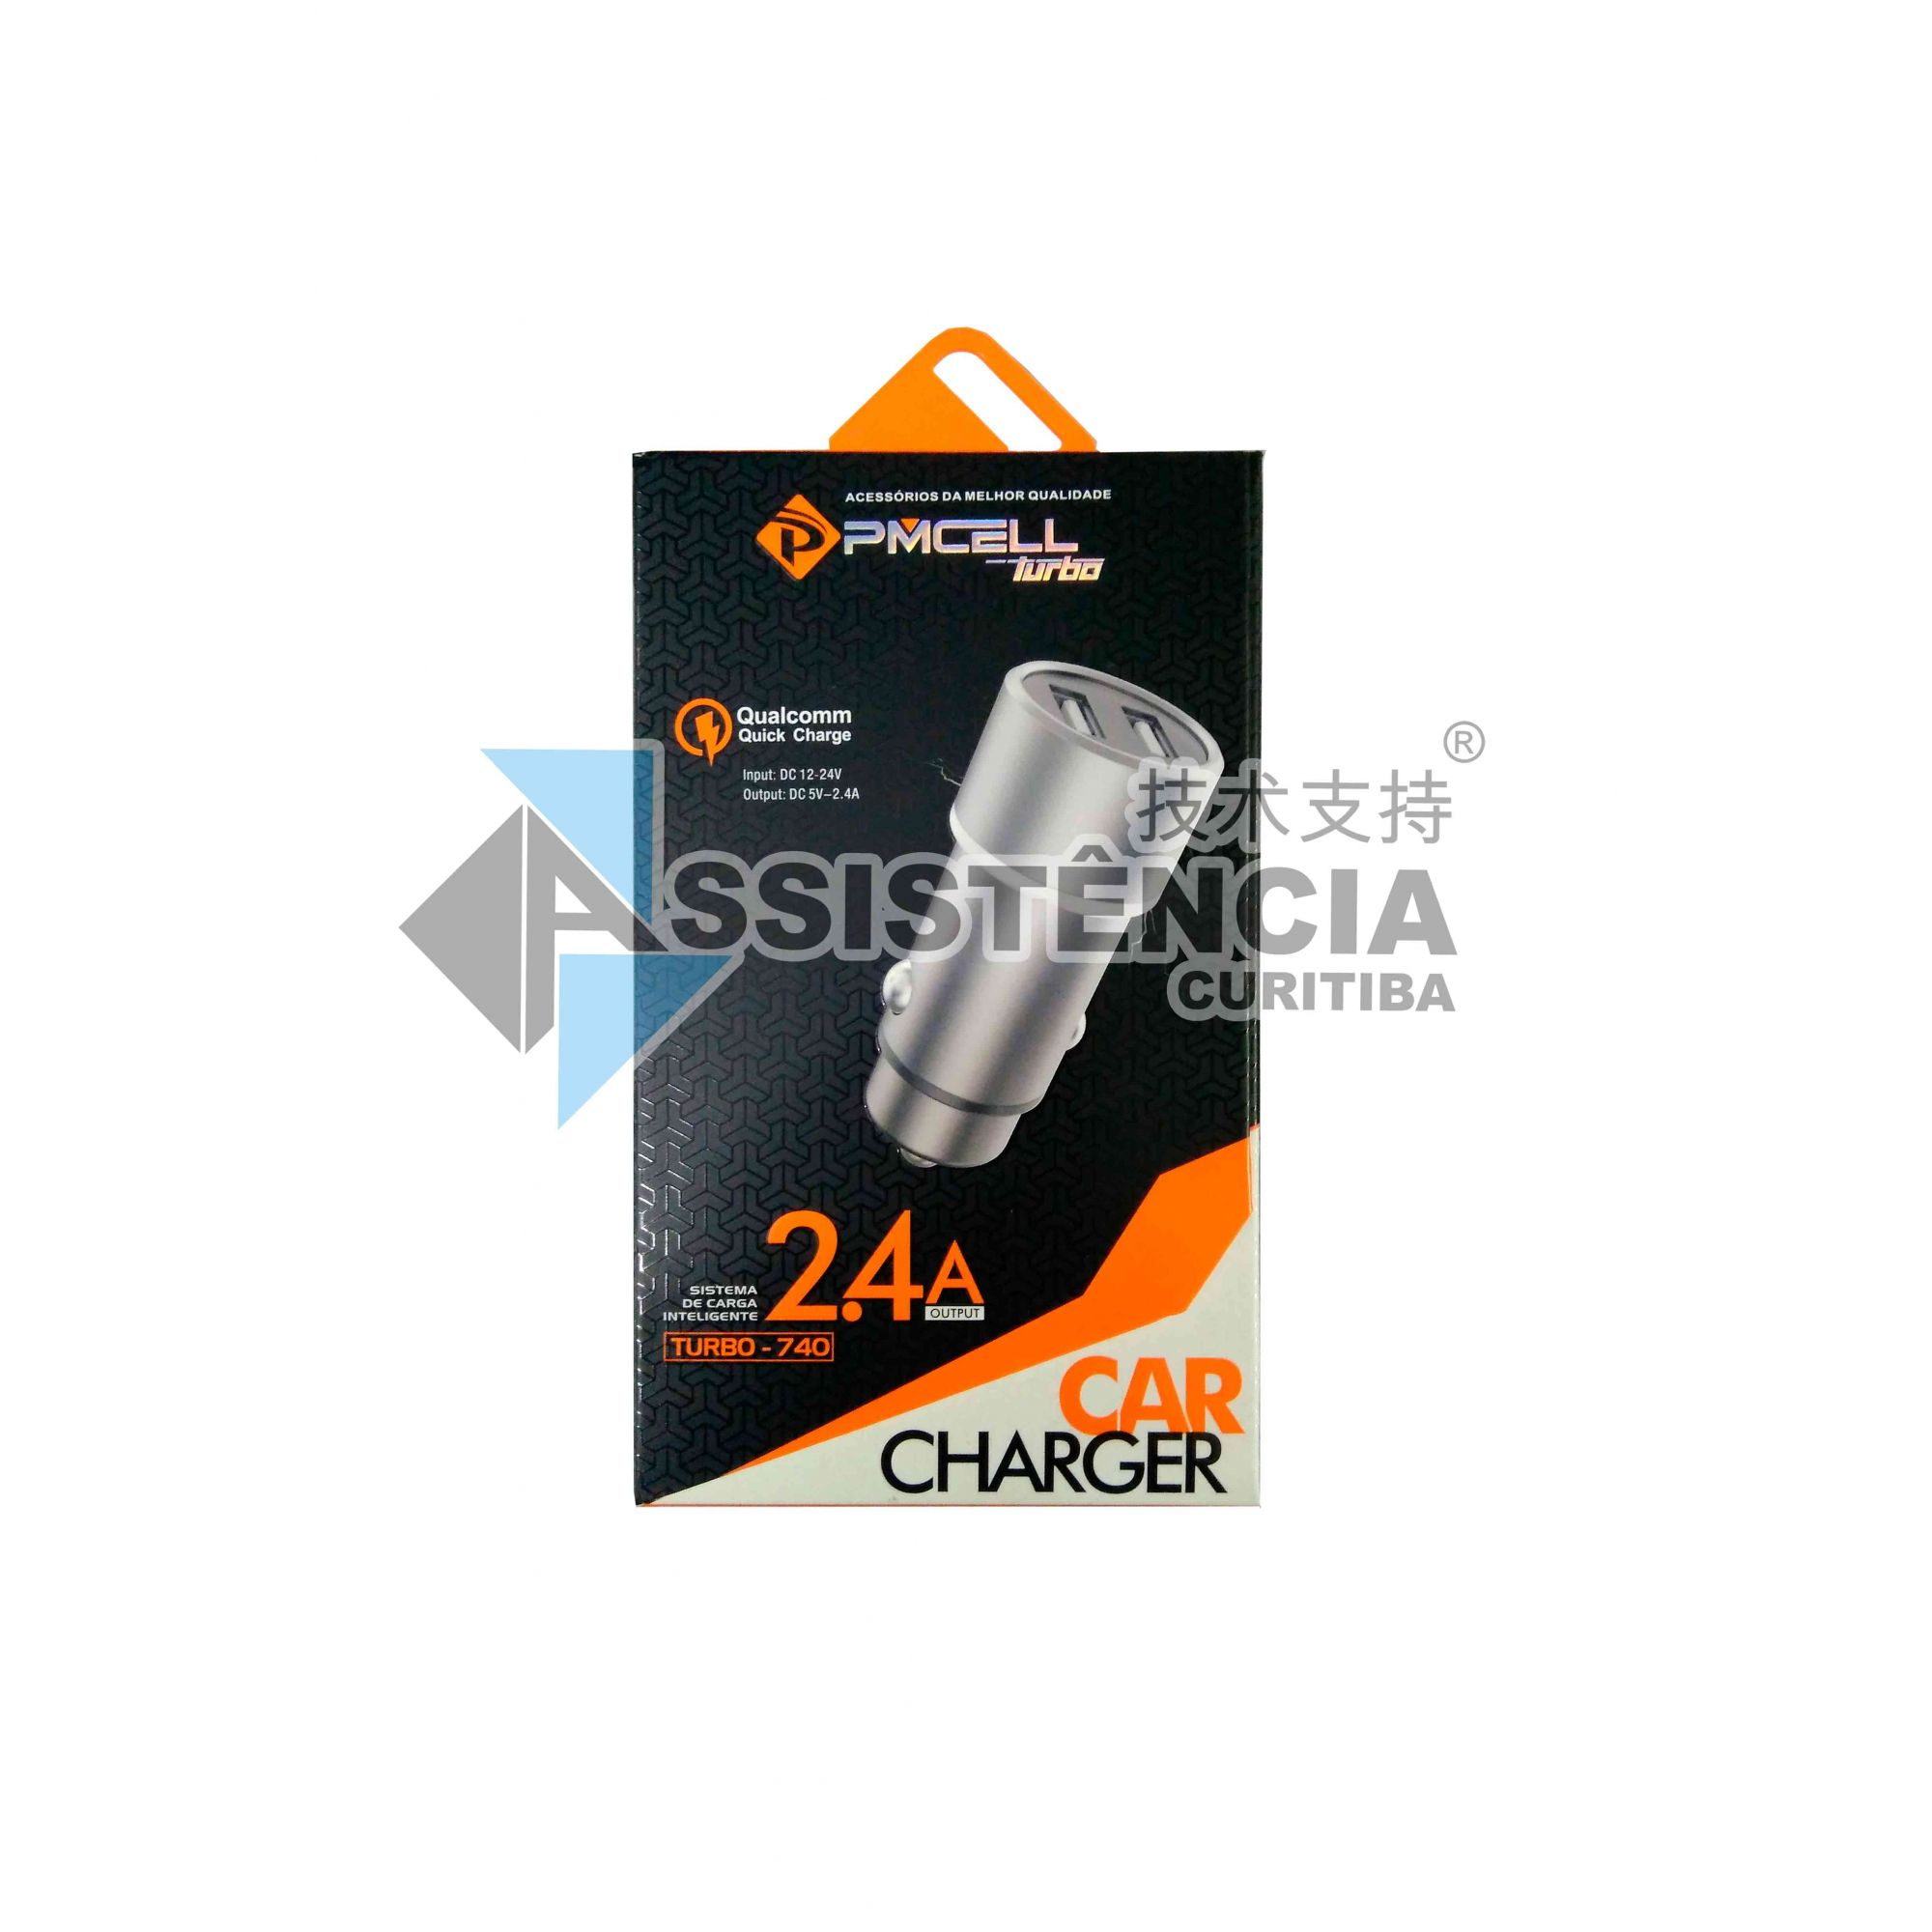 CARREGADOR VEICULAR PMCELL TURBO 740 CHARGER QUALCOMM 2.4A